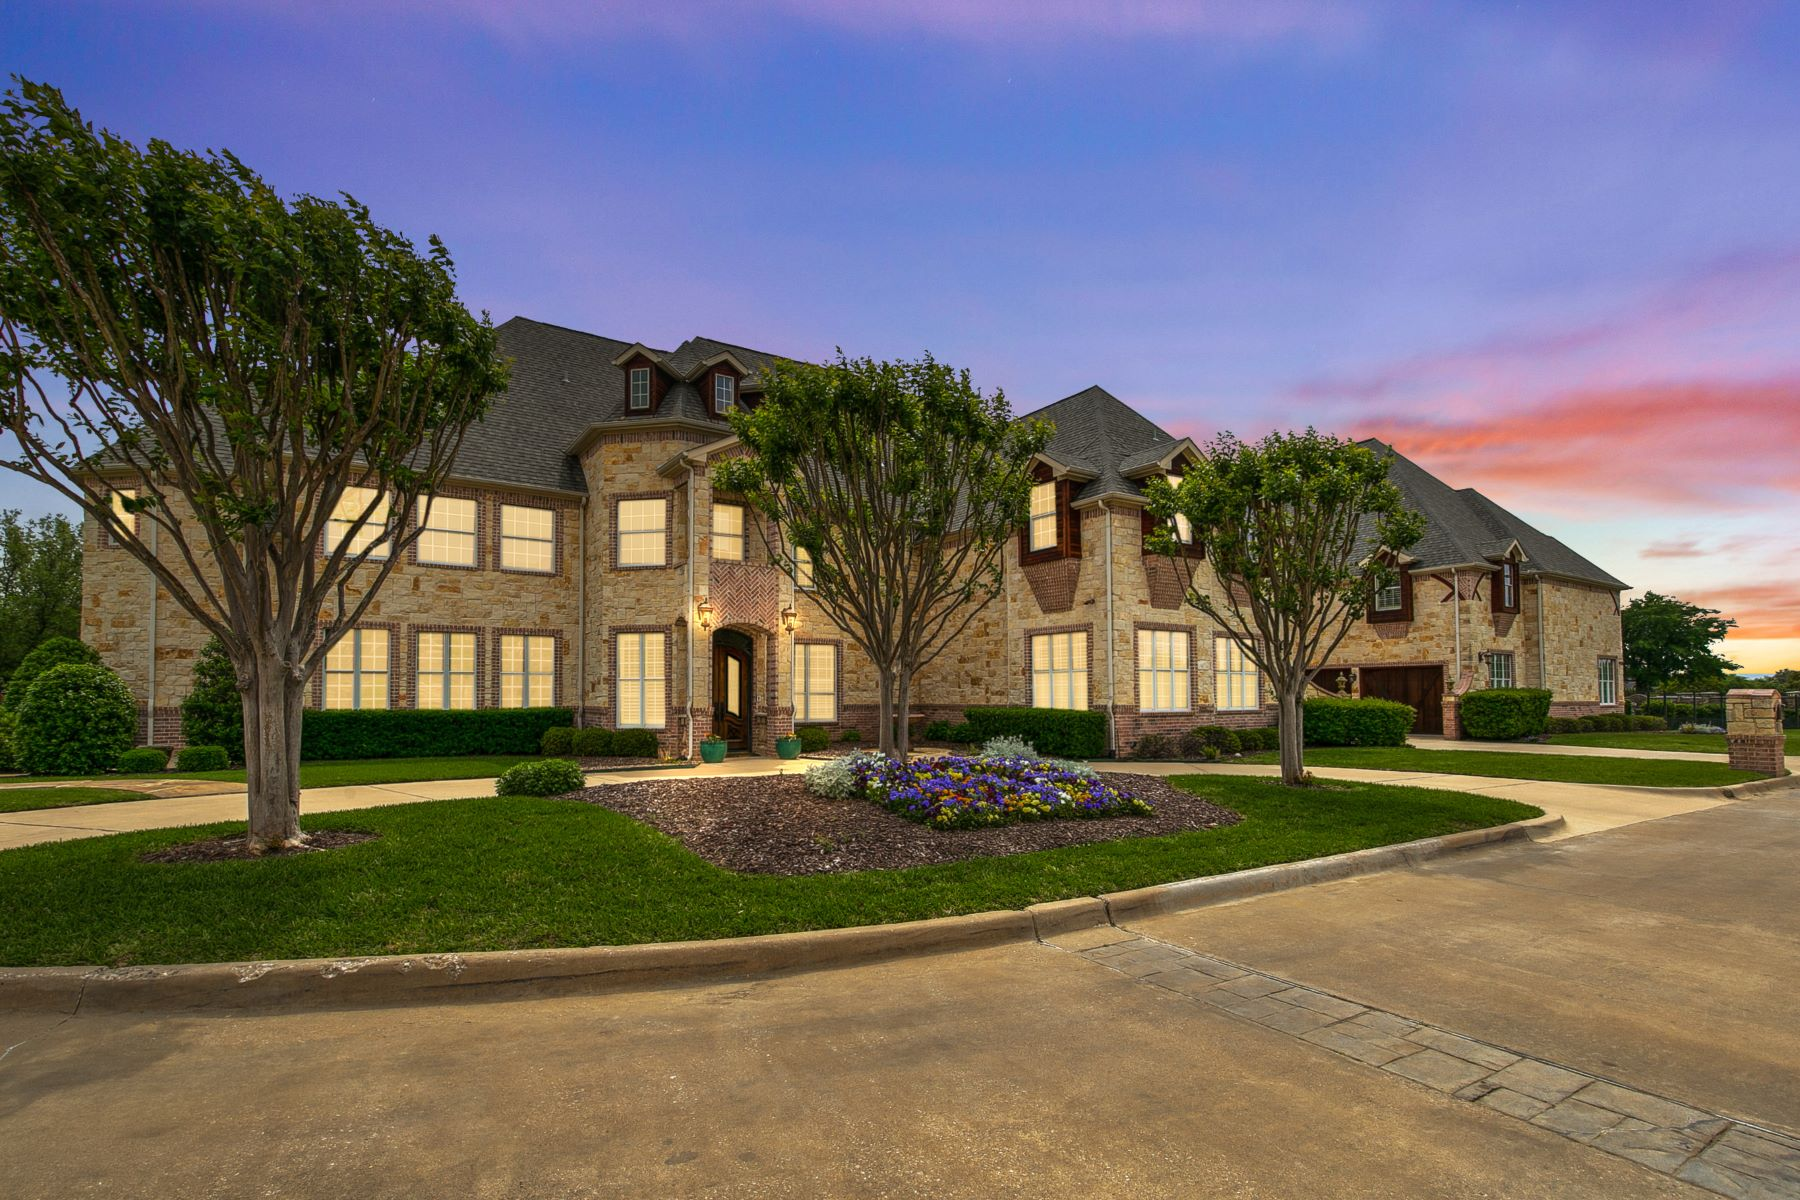 Single Family Homes for Sale at One Acre Estate in the Heart of Southlake 210 E Continental Boulevard Southlake, Texas 76092 United States